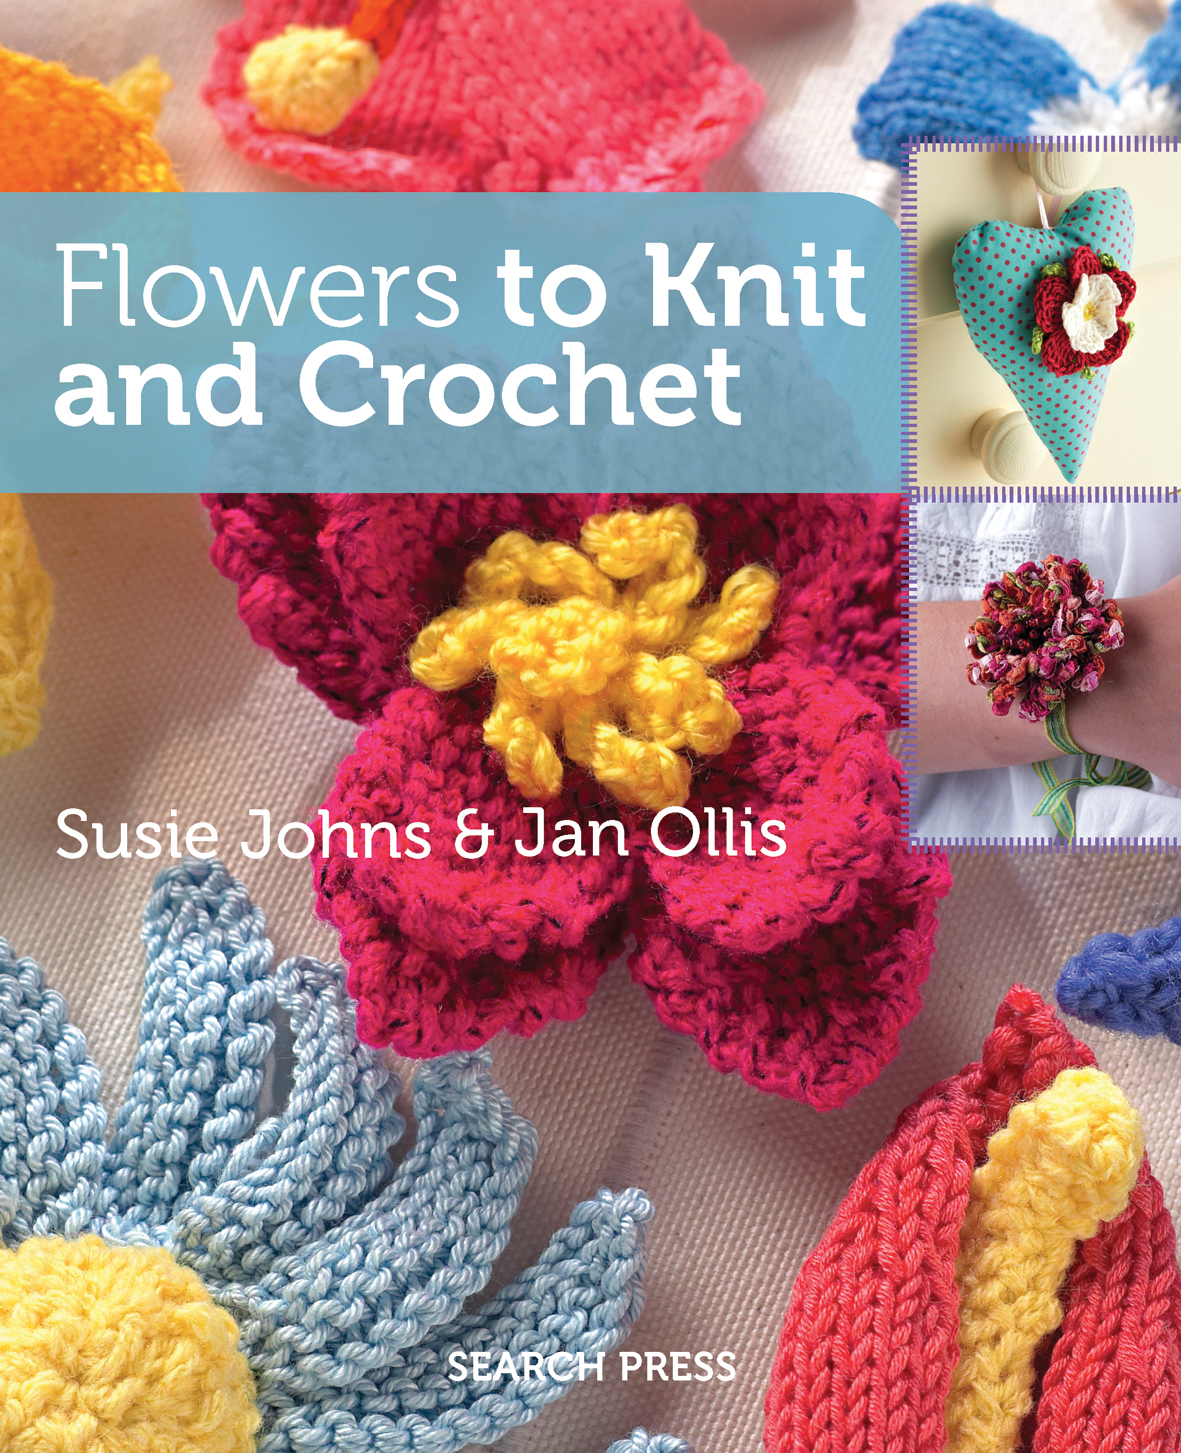 Knitting And Crochet Pattern Books : Search Press Flowers to Knit & Crochet by Susie Johns and Jan Ollis